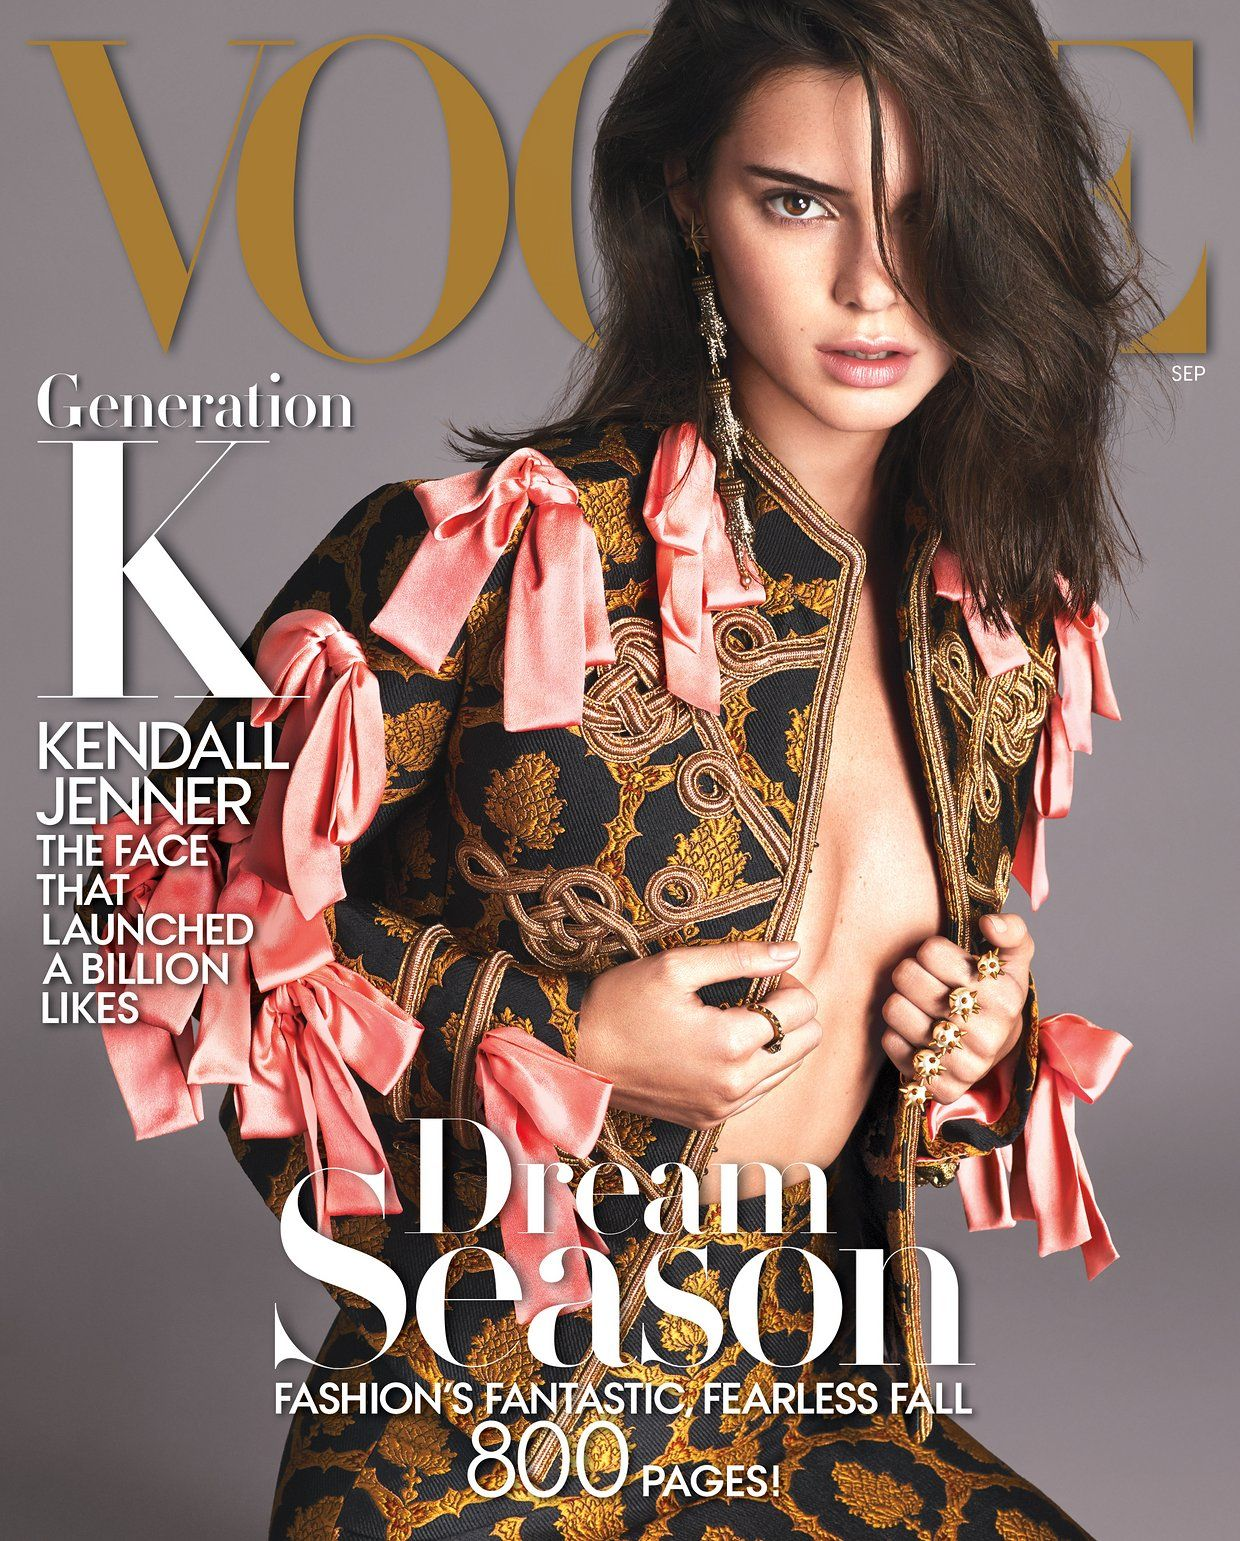 Kendall Jenner covers Vogue September 2016 issue (wears Gucci)